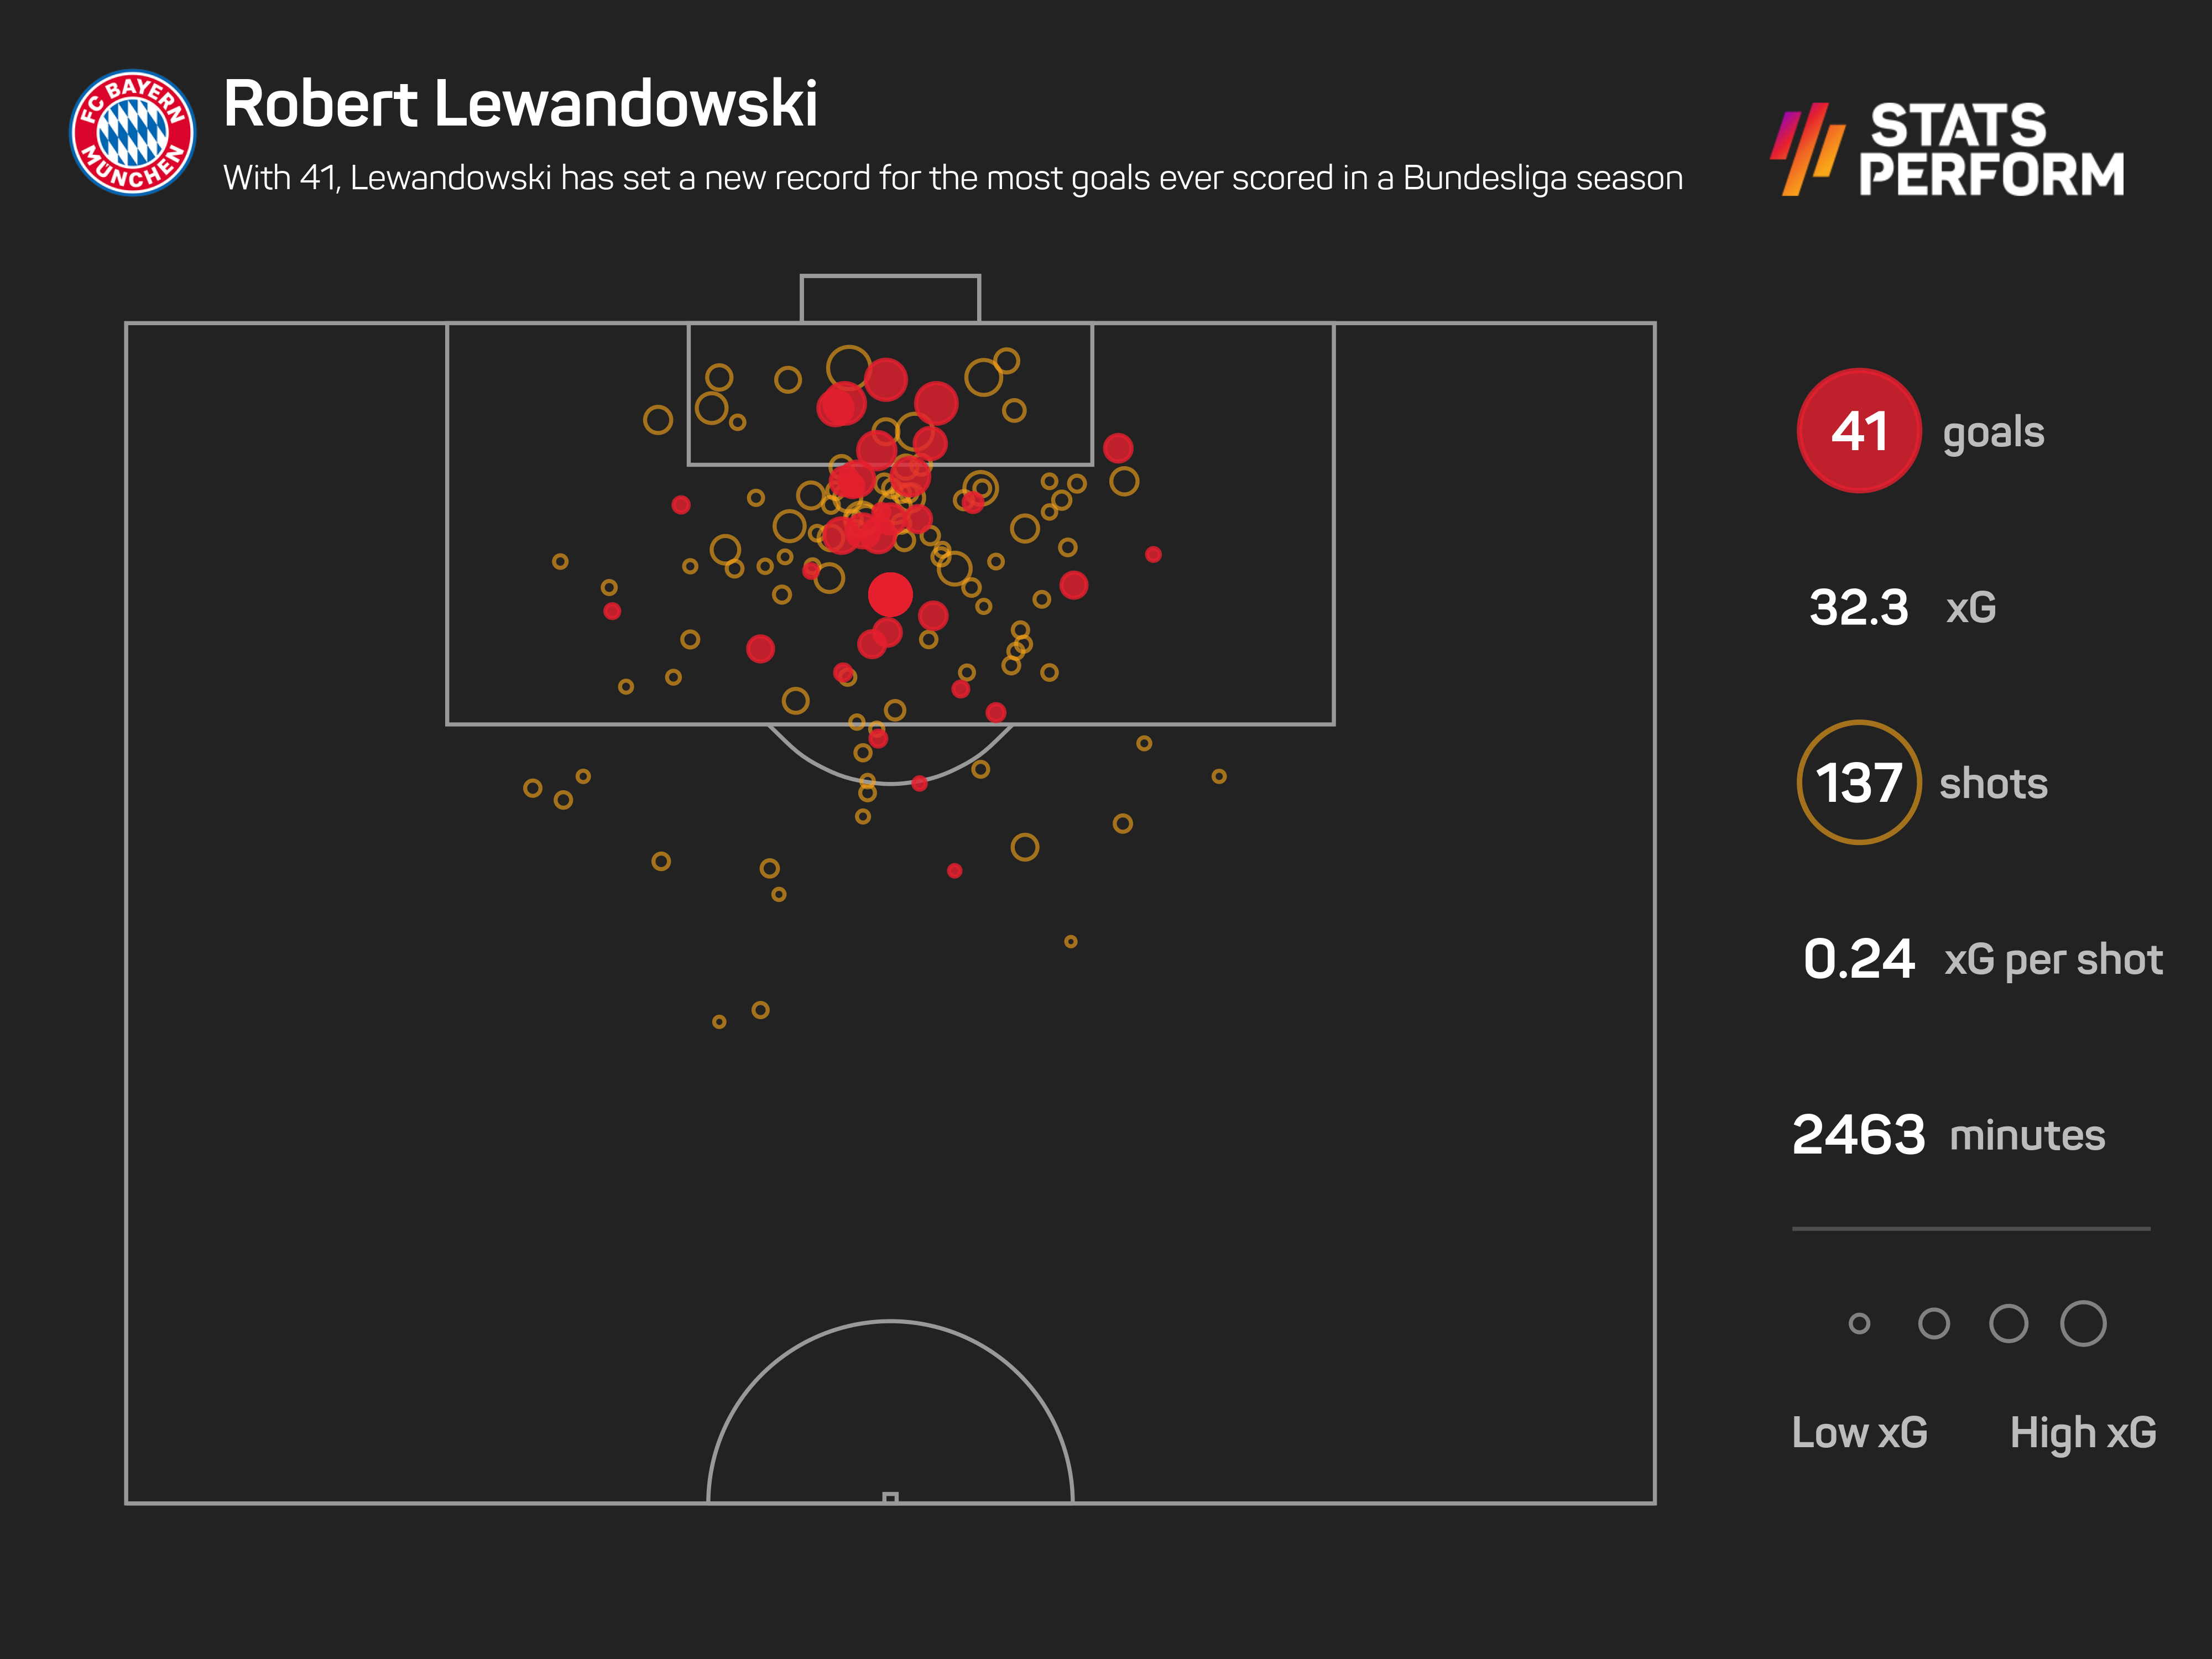 With 41, Lewandowski has set a new record for the most goals ever scored in a Bundesliga season